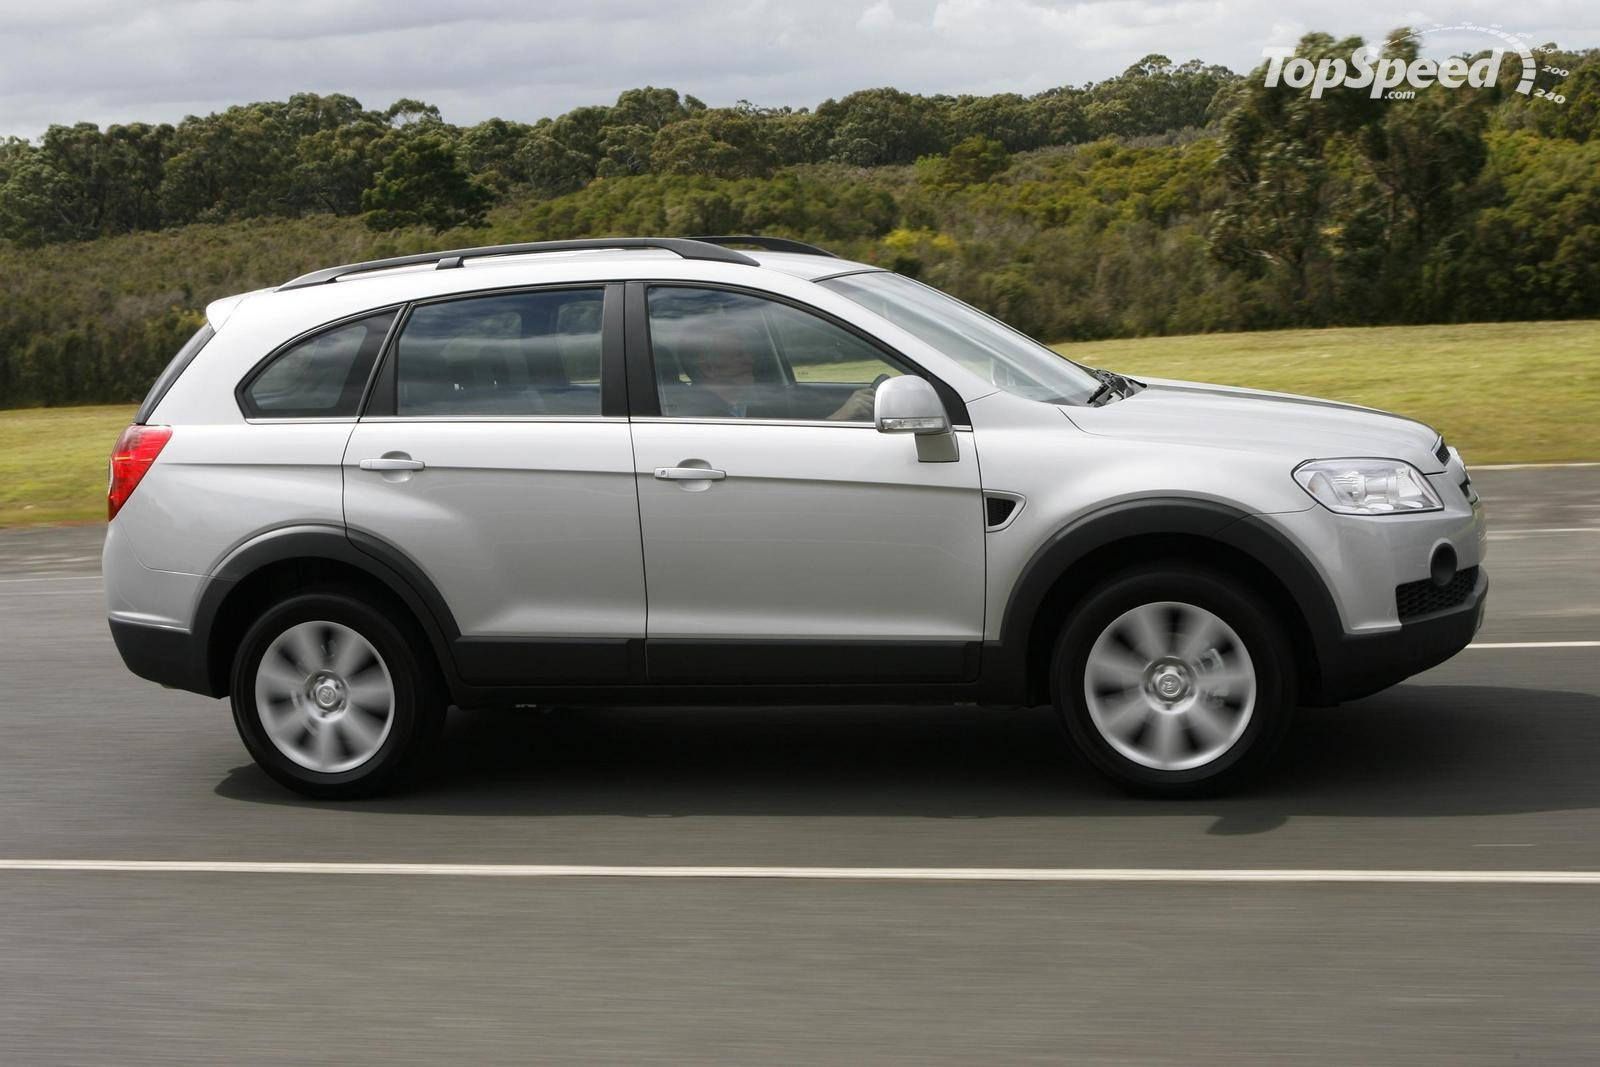 2007 Holden Captiva #2